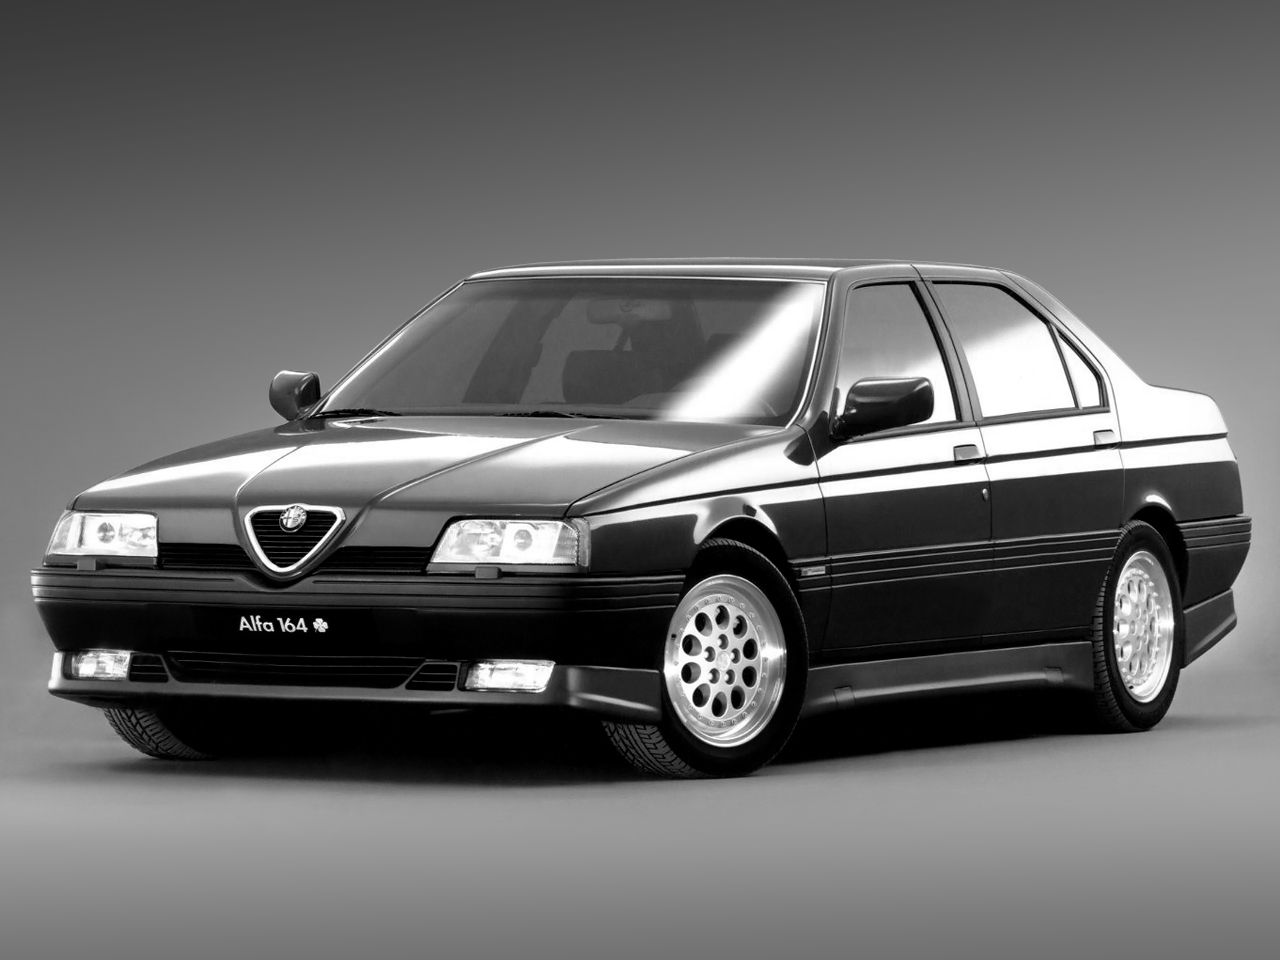 i always quite liked the threatening brutality of the alfa romeo